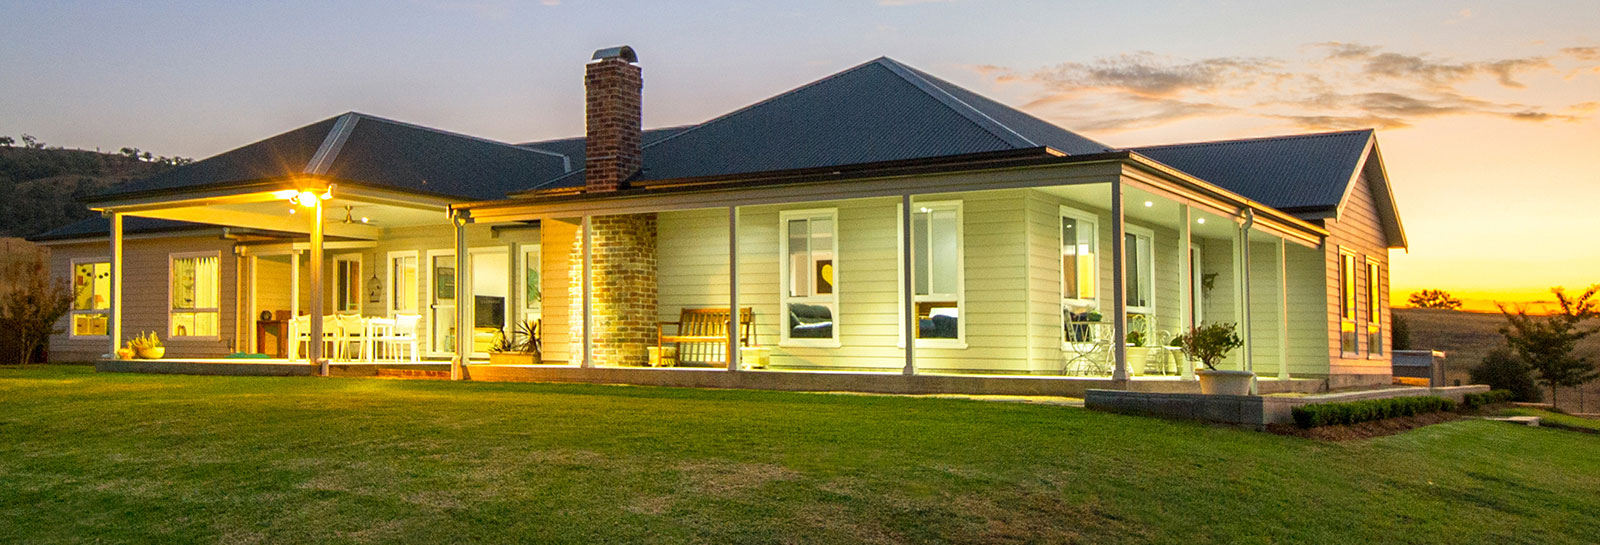 Paal kit homes steel frame homes paal kit homes australia for Homes to build on acreage